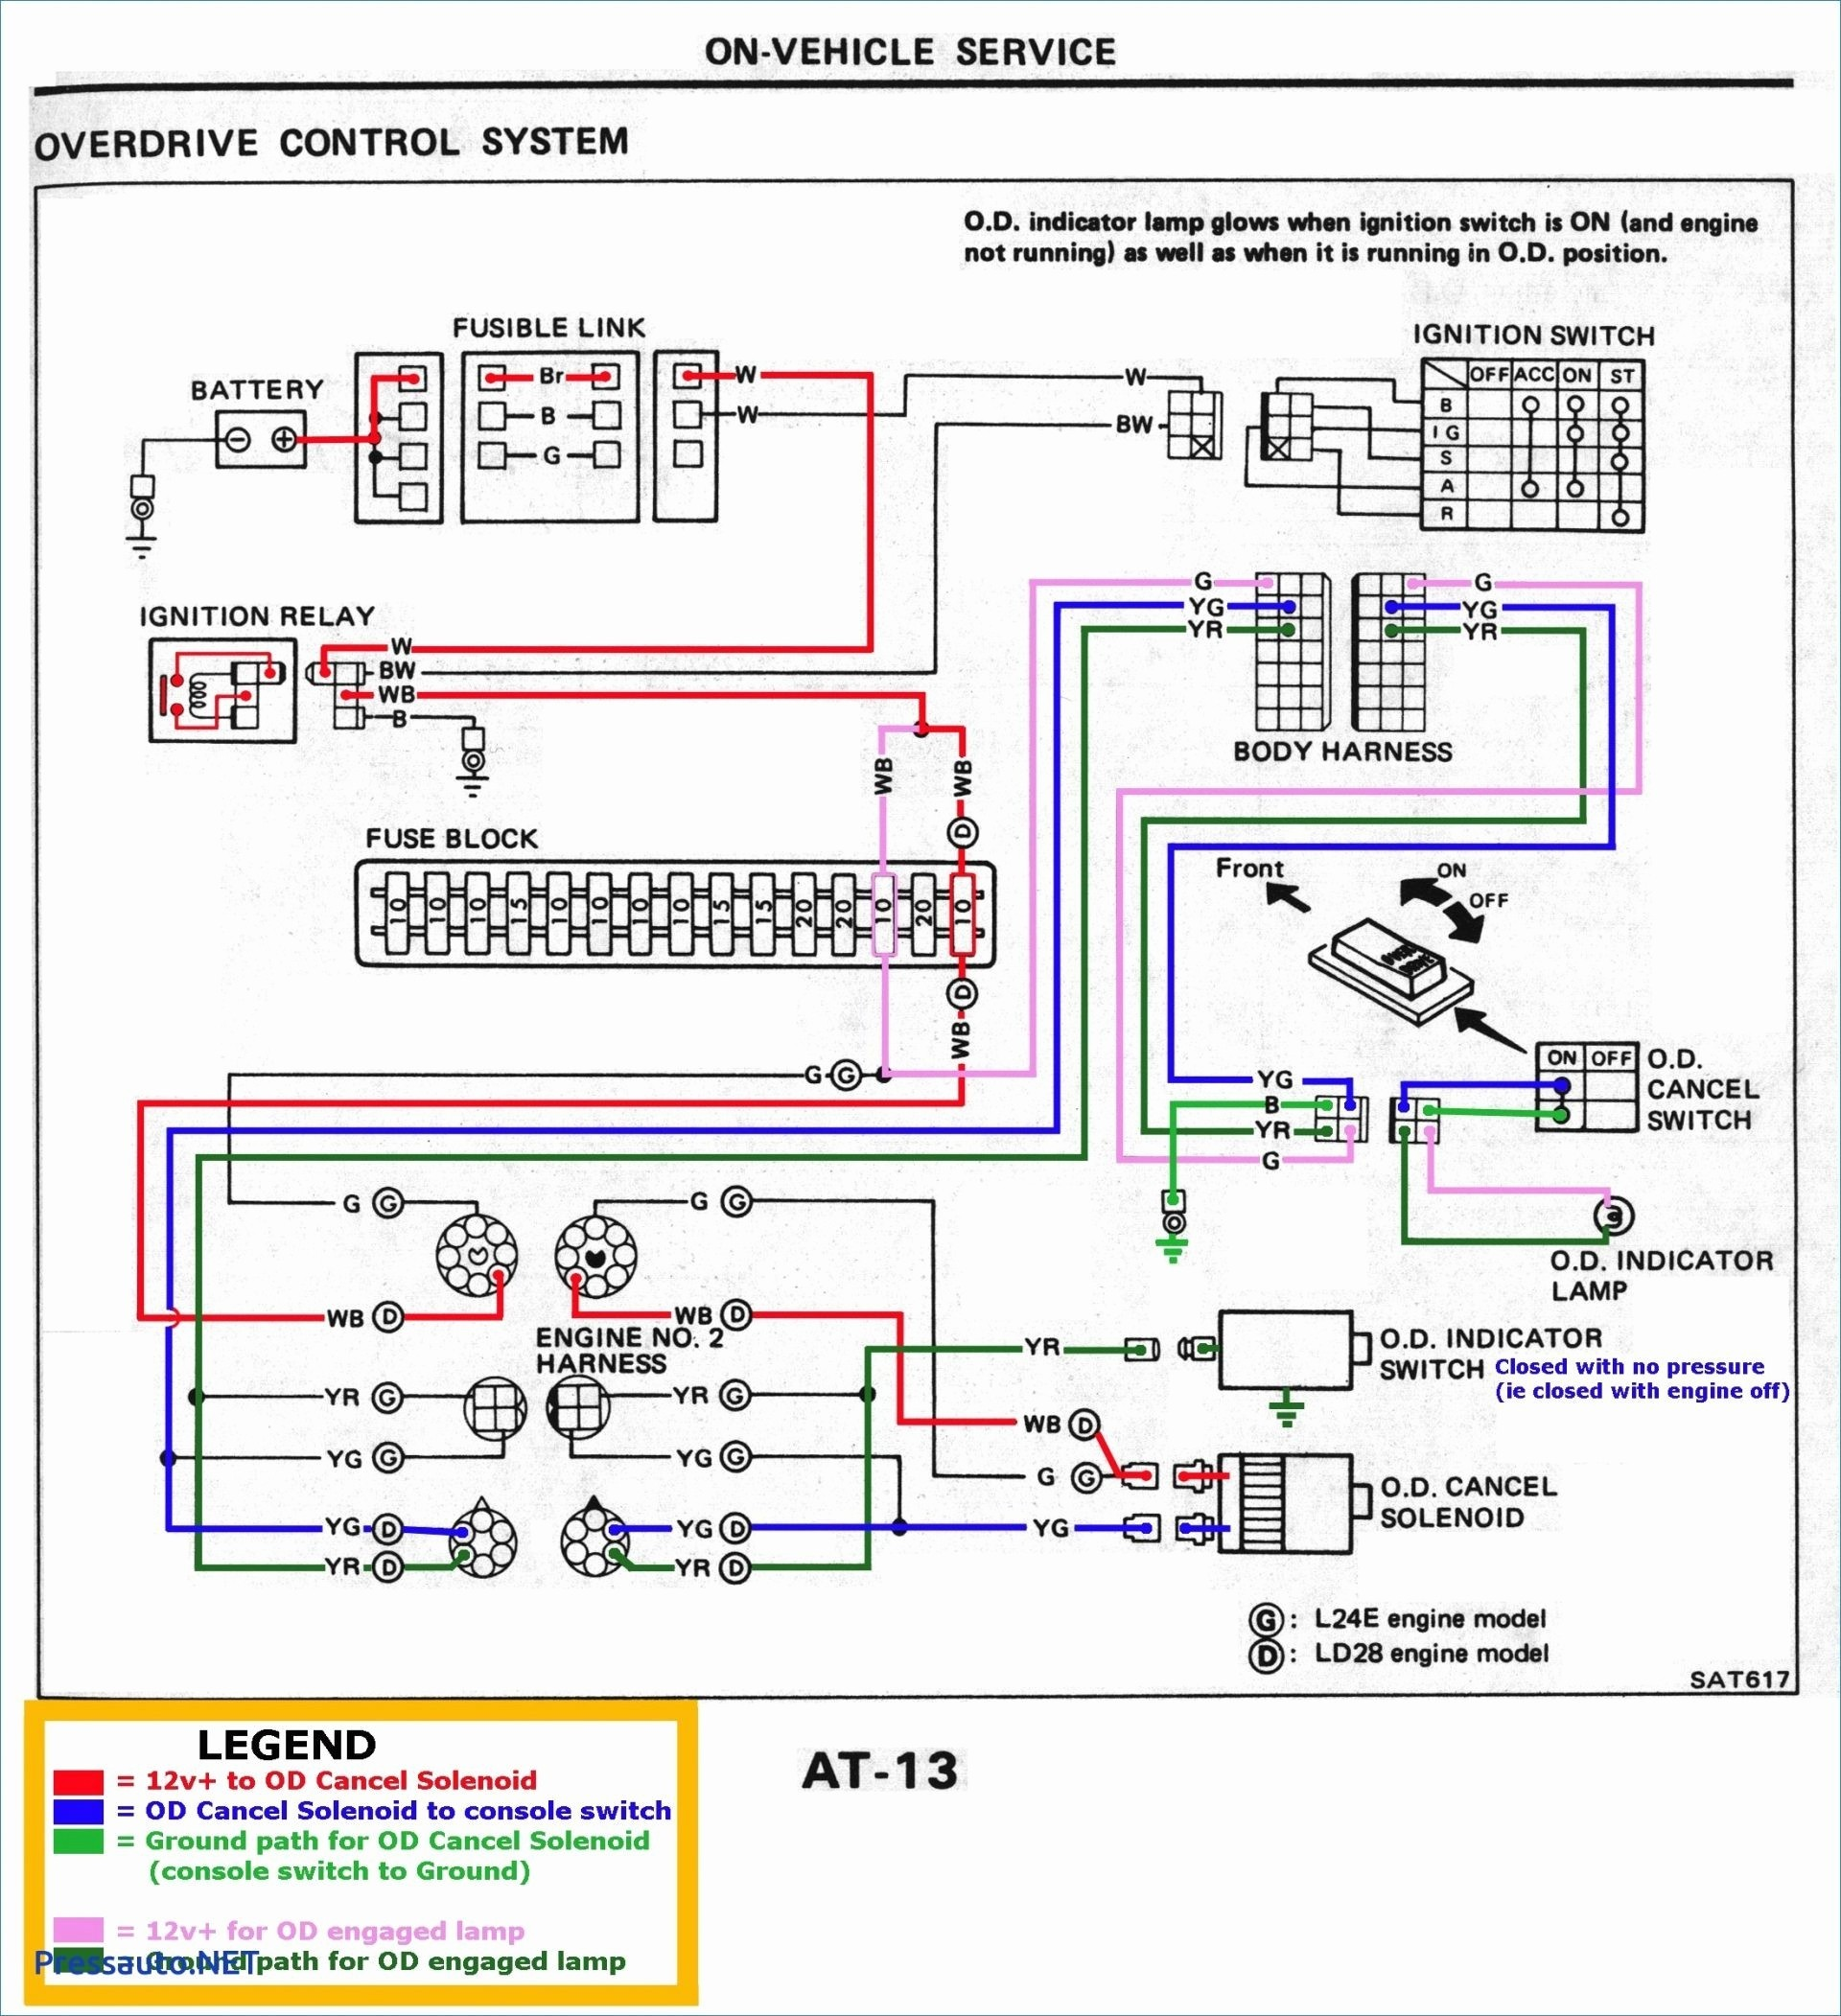 1994 toyota Corolla Engine Diagram Wiring Diagram 1994 toyota Corolla  Wiring Diagram Lovely Bronco Ii Of